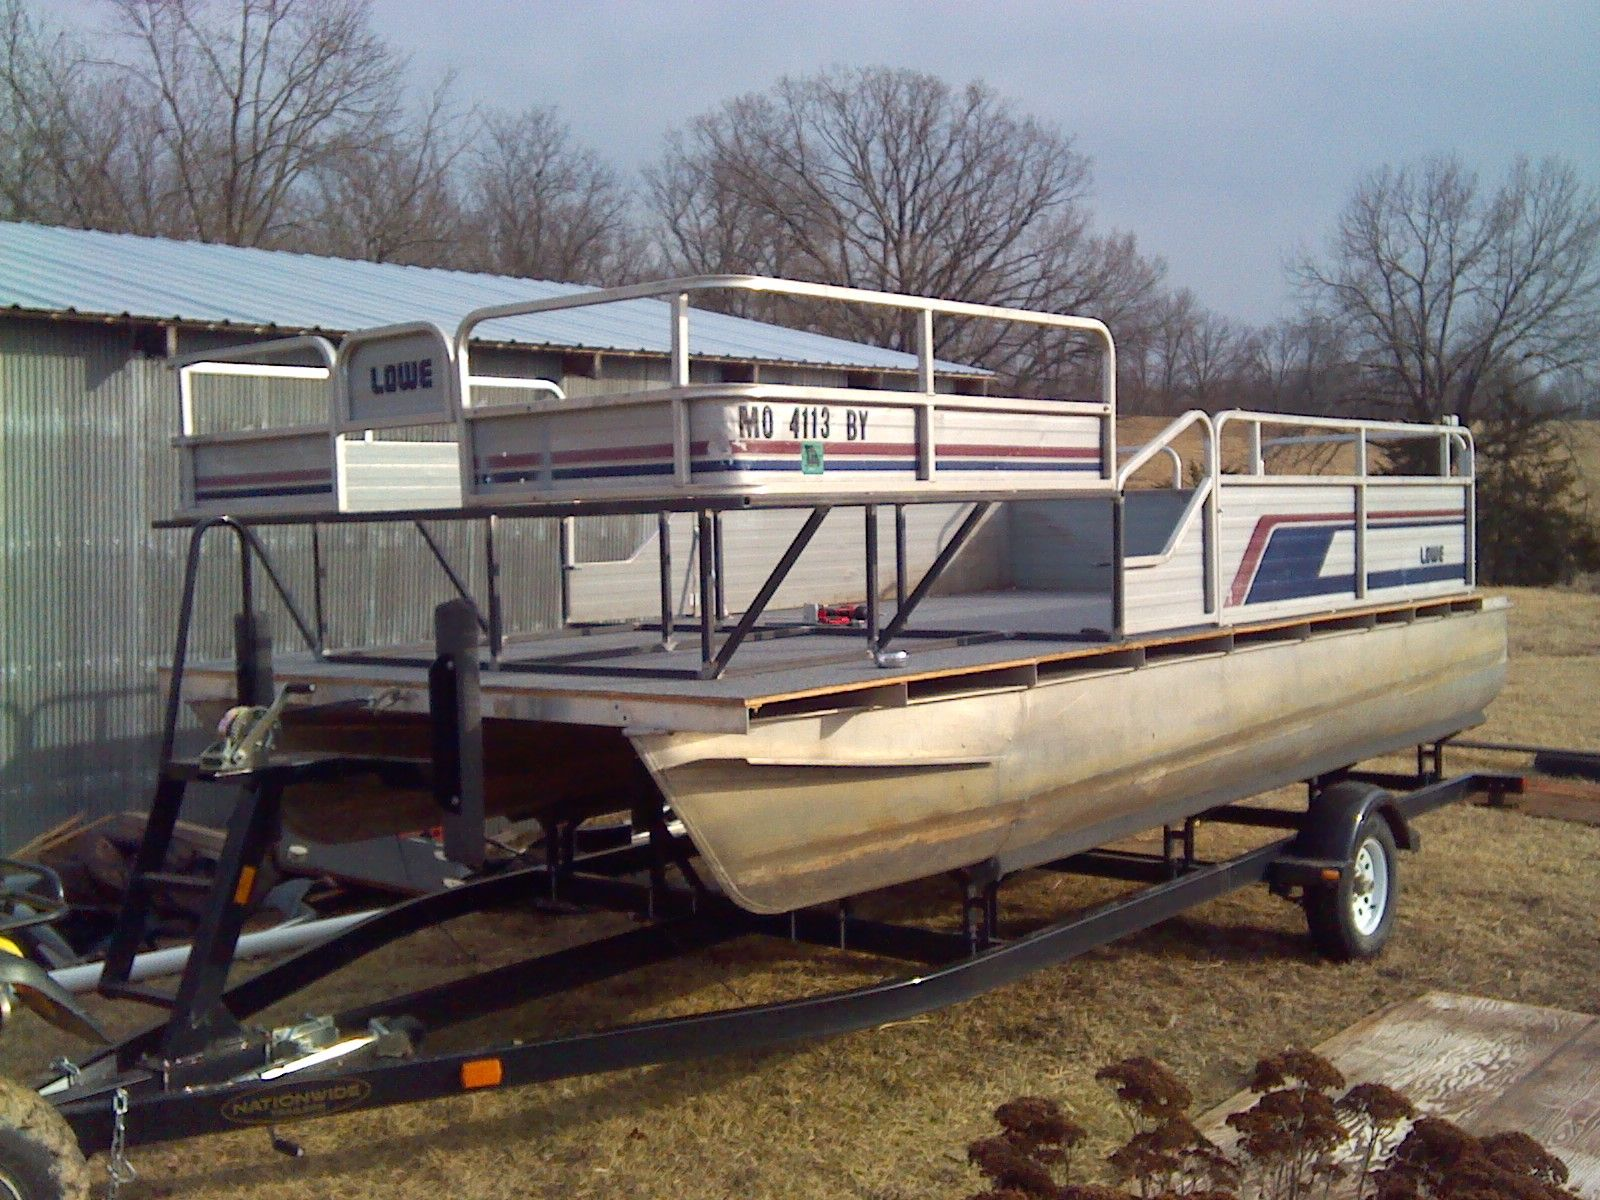 My First Boat And Build 18ft Pontoon Bowfishing Plans